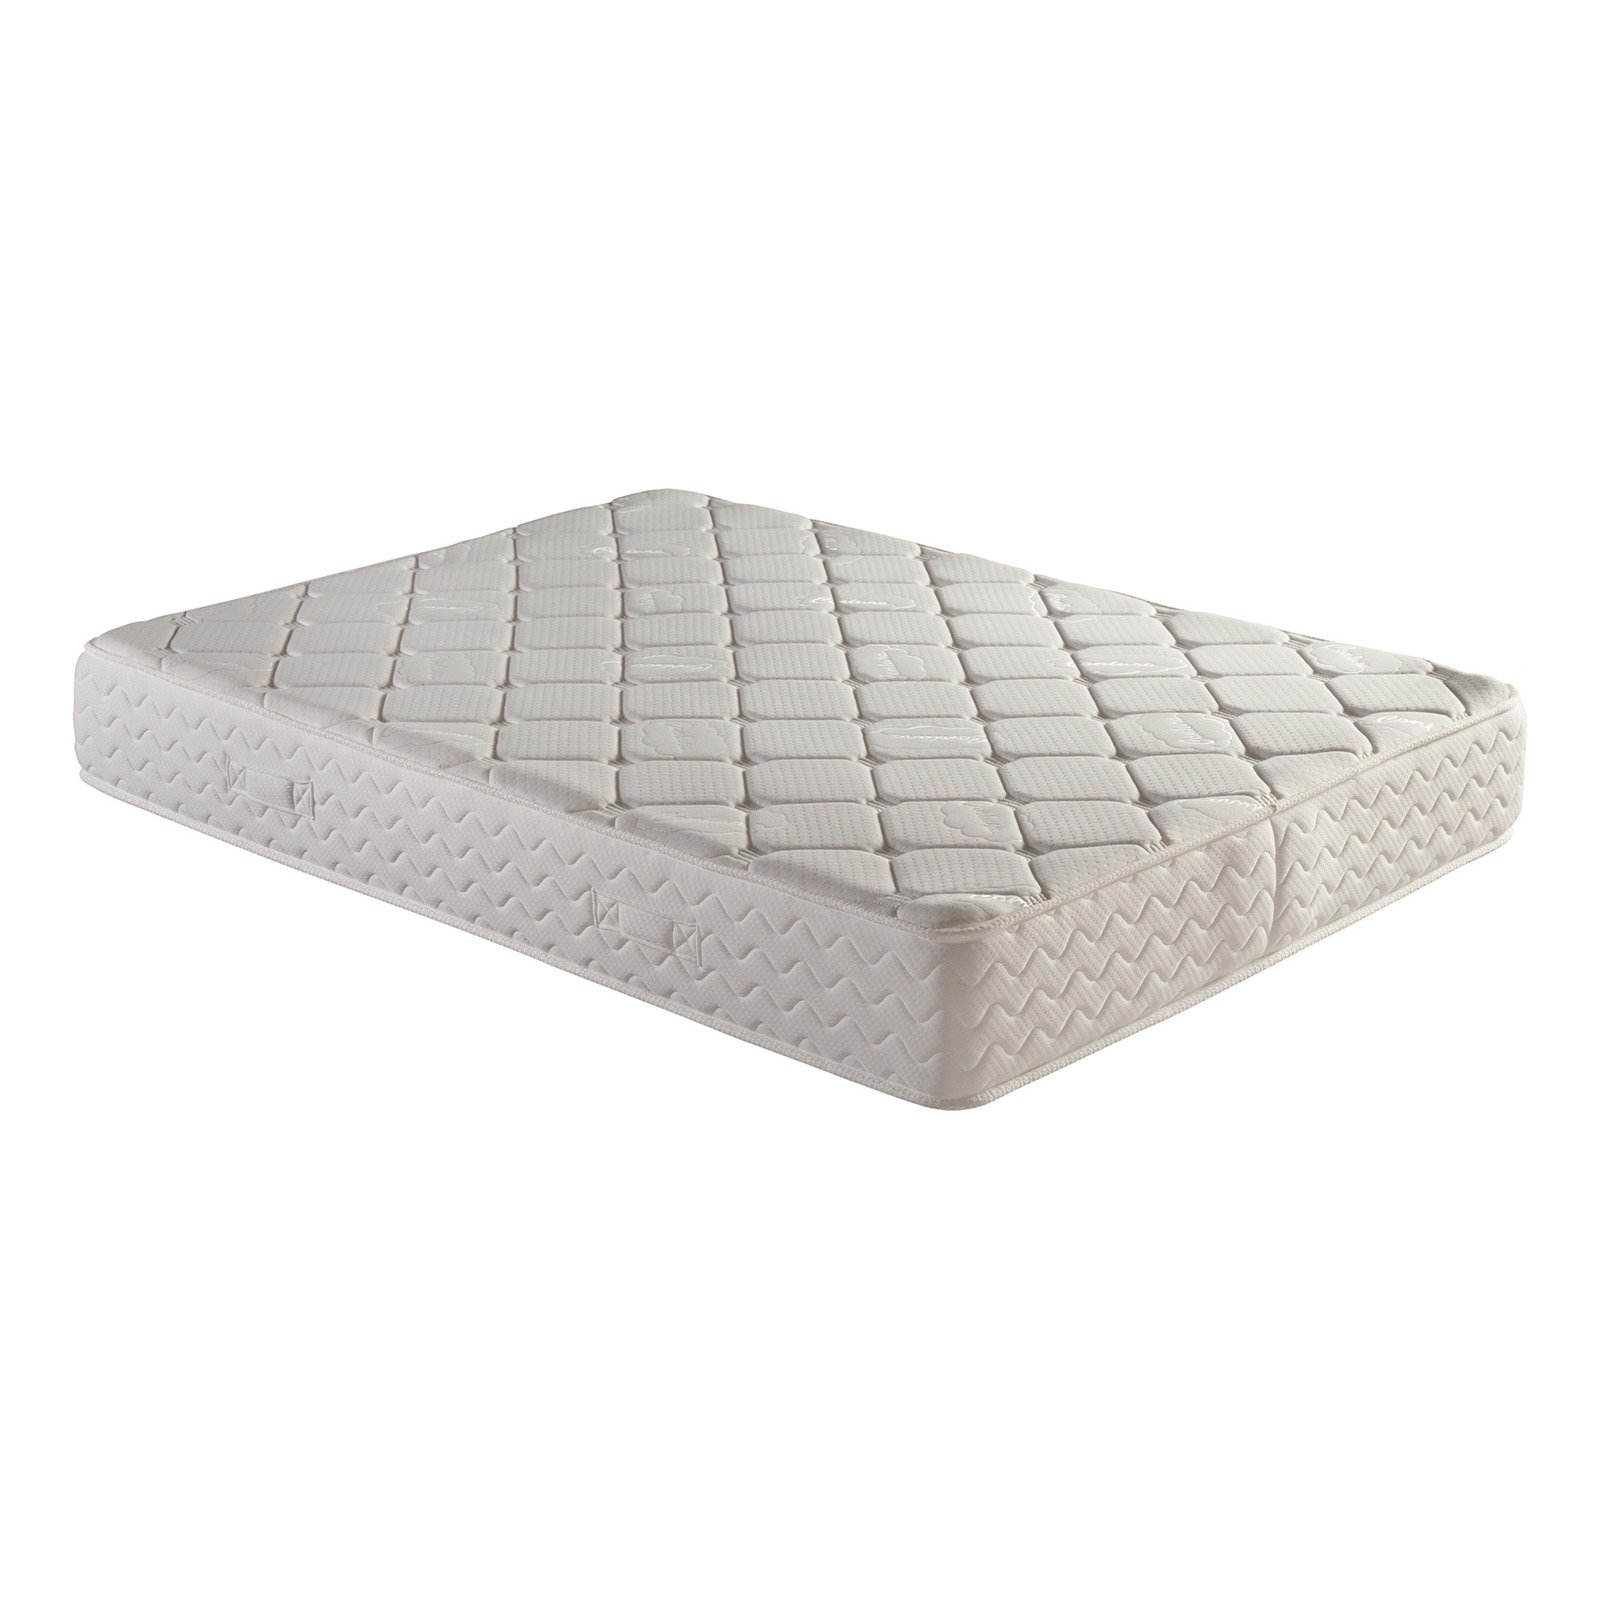 Atlantic Furniture Classic Pocketed Coil Mattress, Size